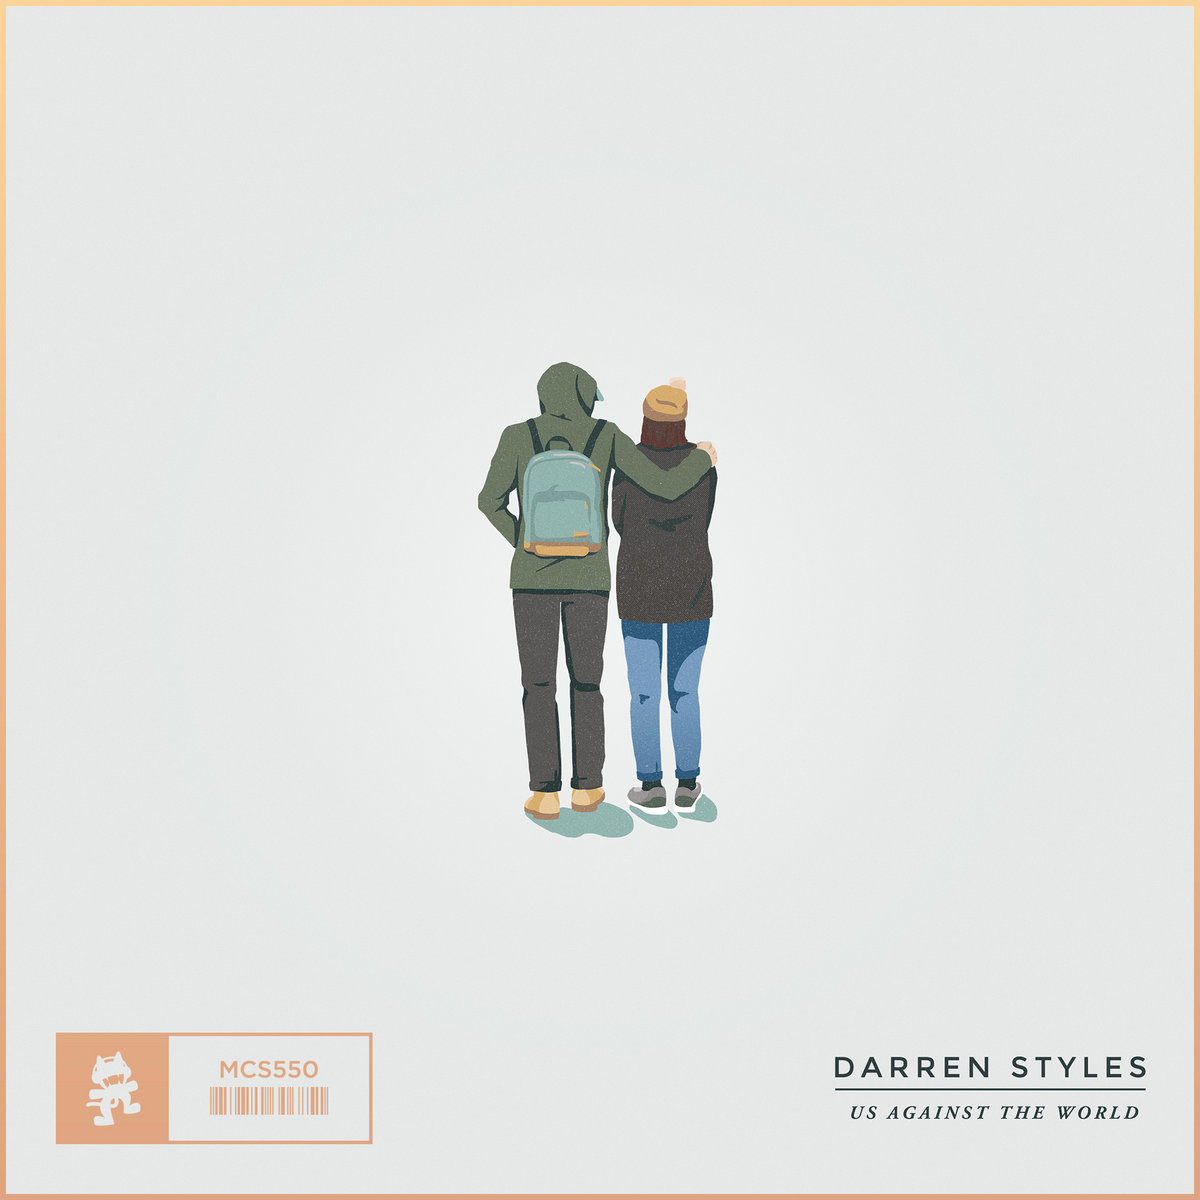 darren styles us against the world mp3 download